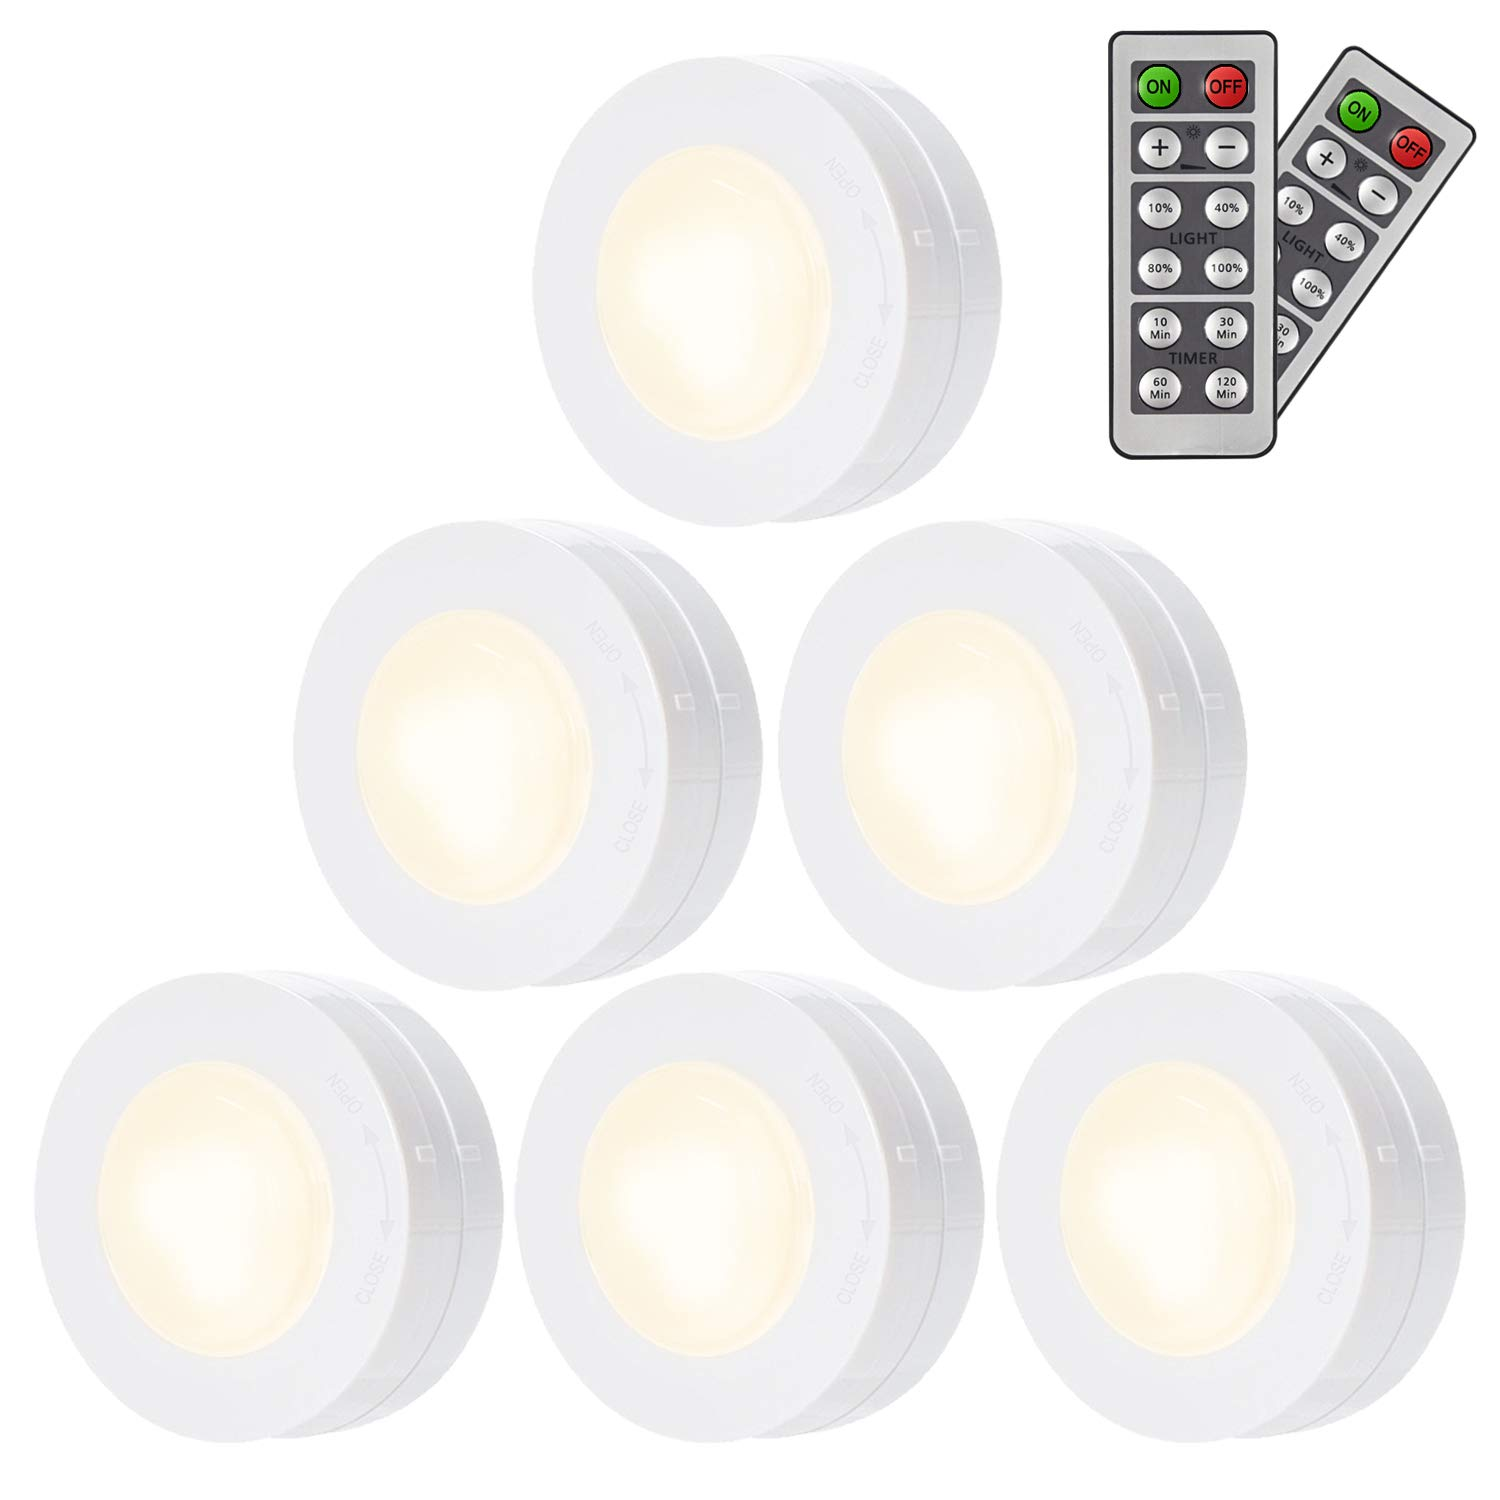 SALKING LED Under Cabinet Lighting, Wireless LED Puck Lights with Remote Control, Dimmable Closet Light, Battery Powered Under Counter Lights for Kitchen, Natural White 6 Pack by Salking (Image #1)